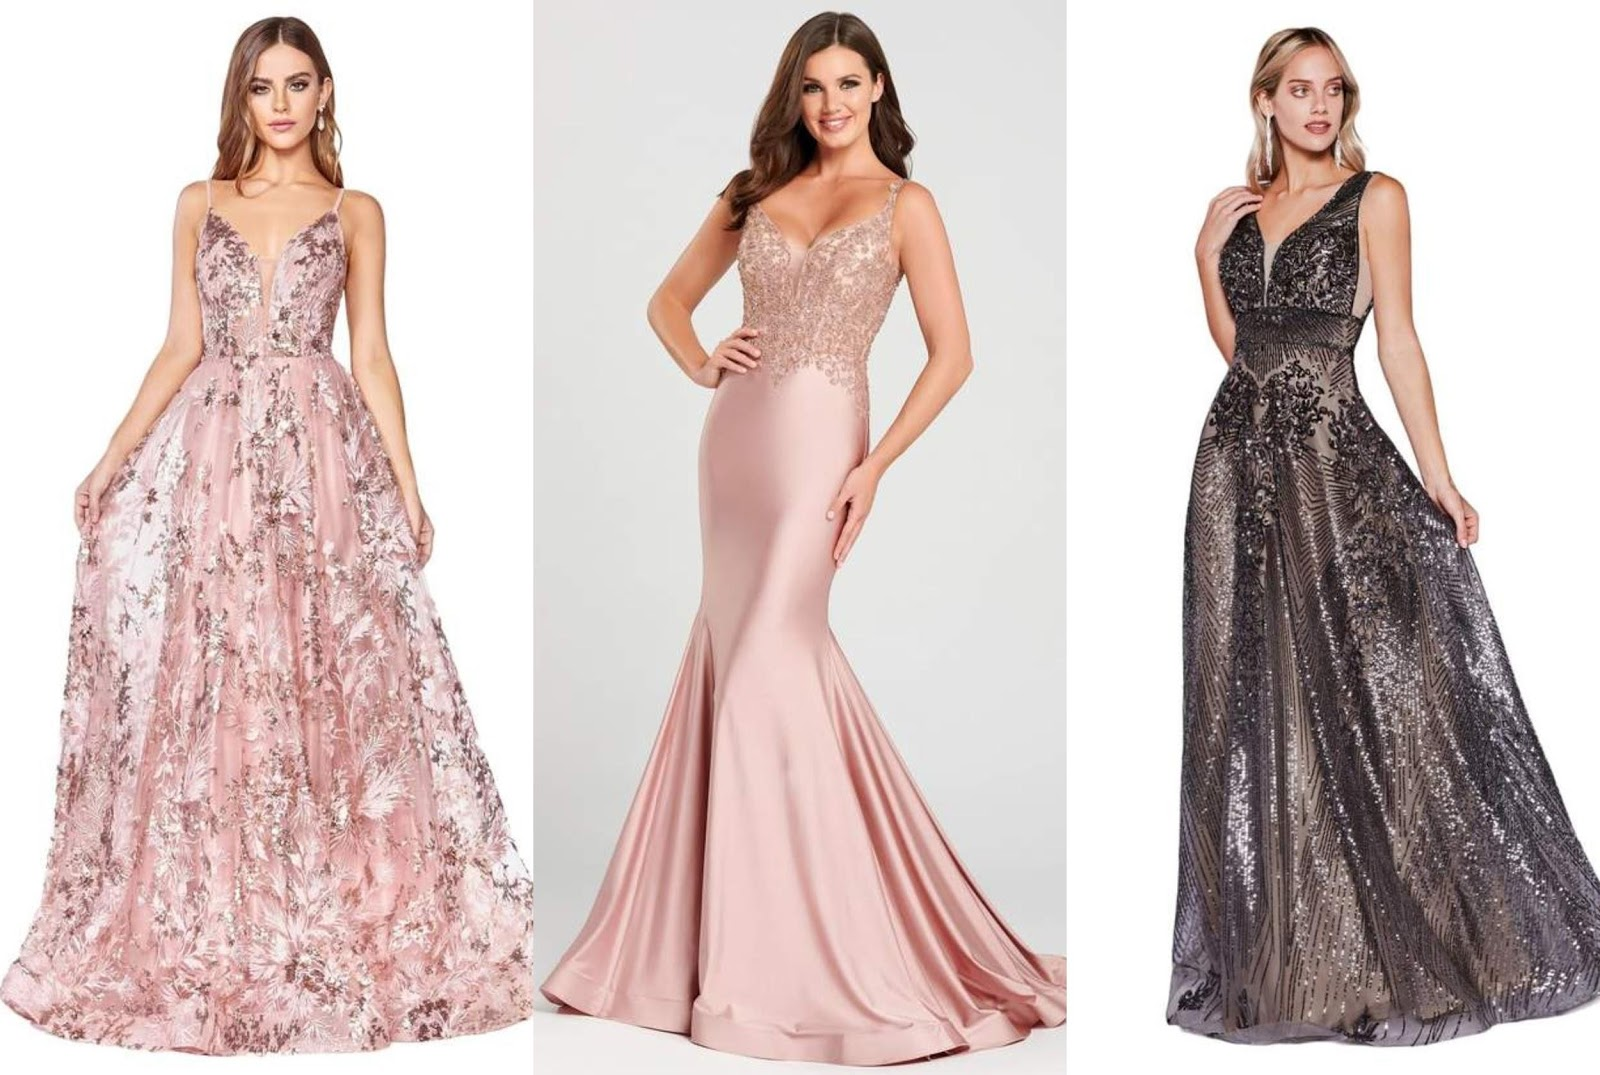 Dress Up Dilemma – 3 Significant Prom Trends for 2021